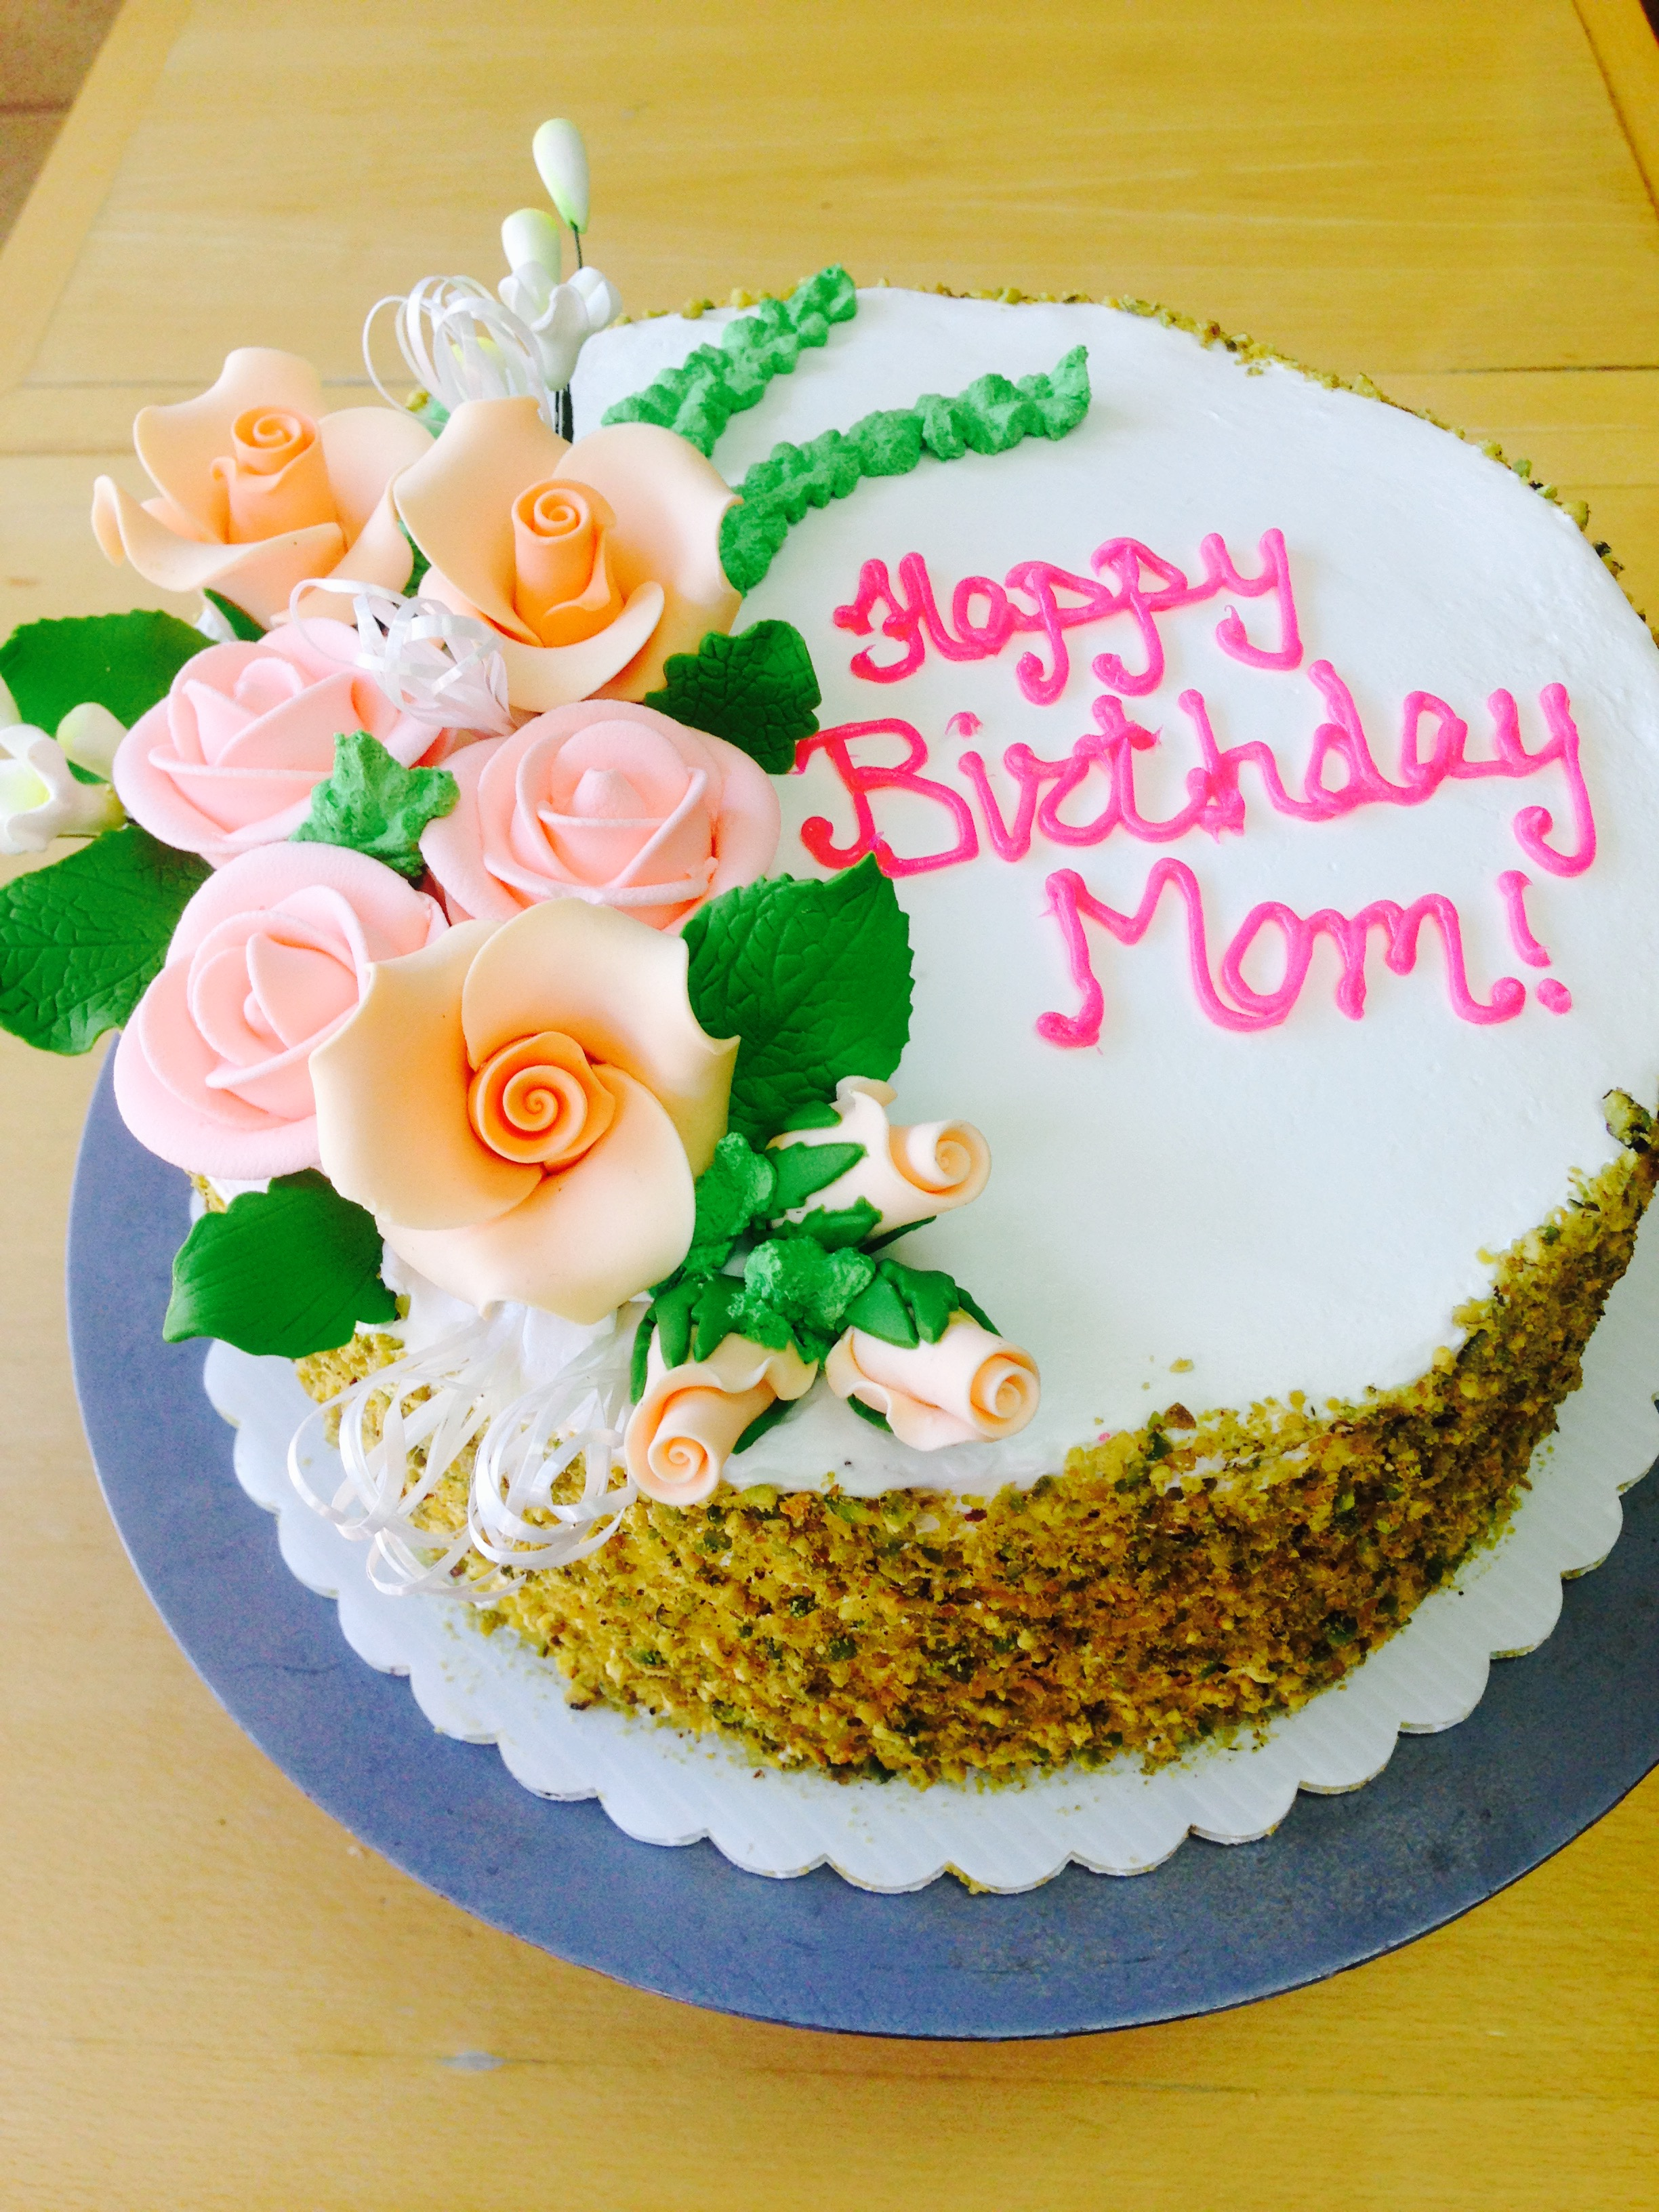 Birthday Cake for Mom July 2015 Wild Berries Bakery and Cafe